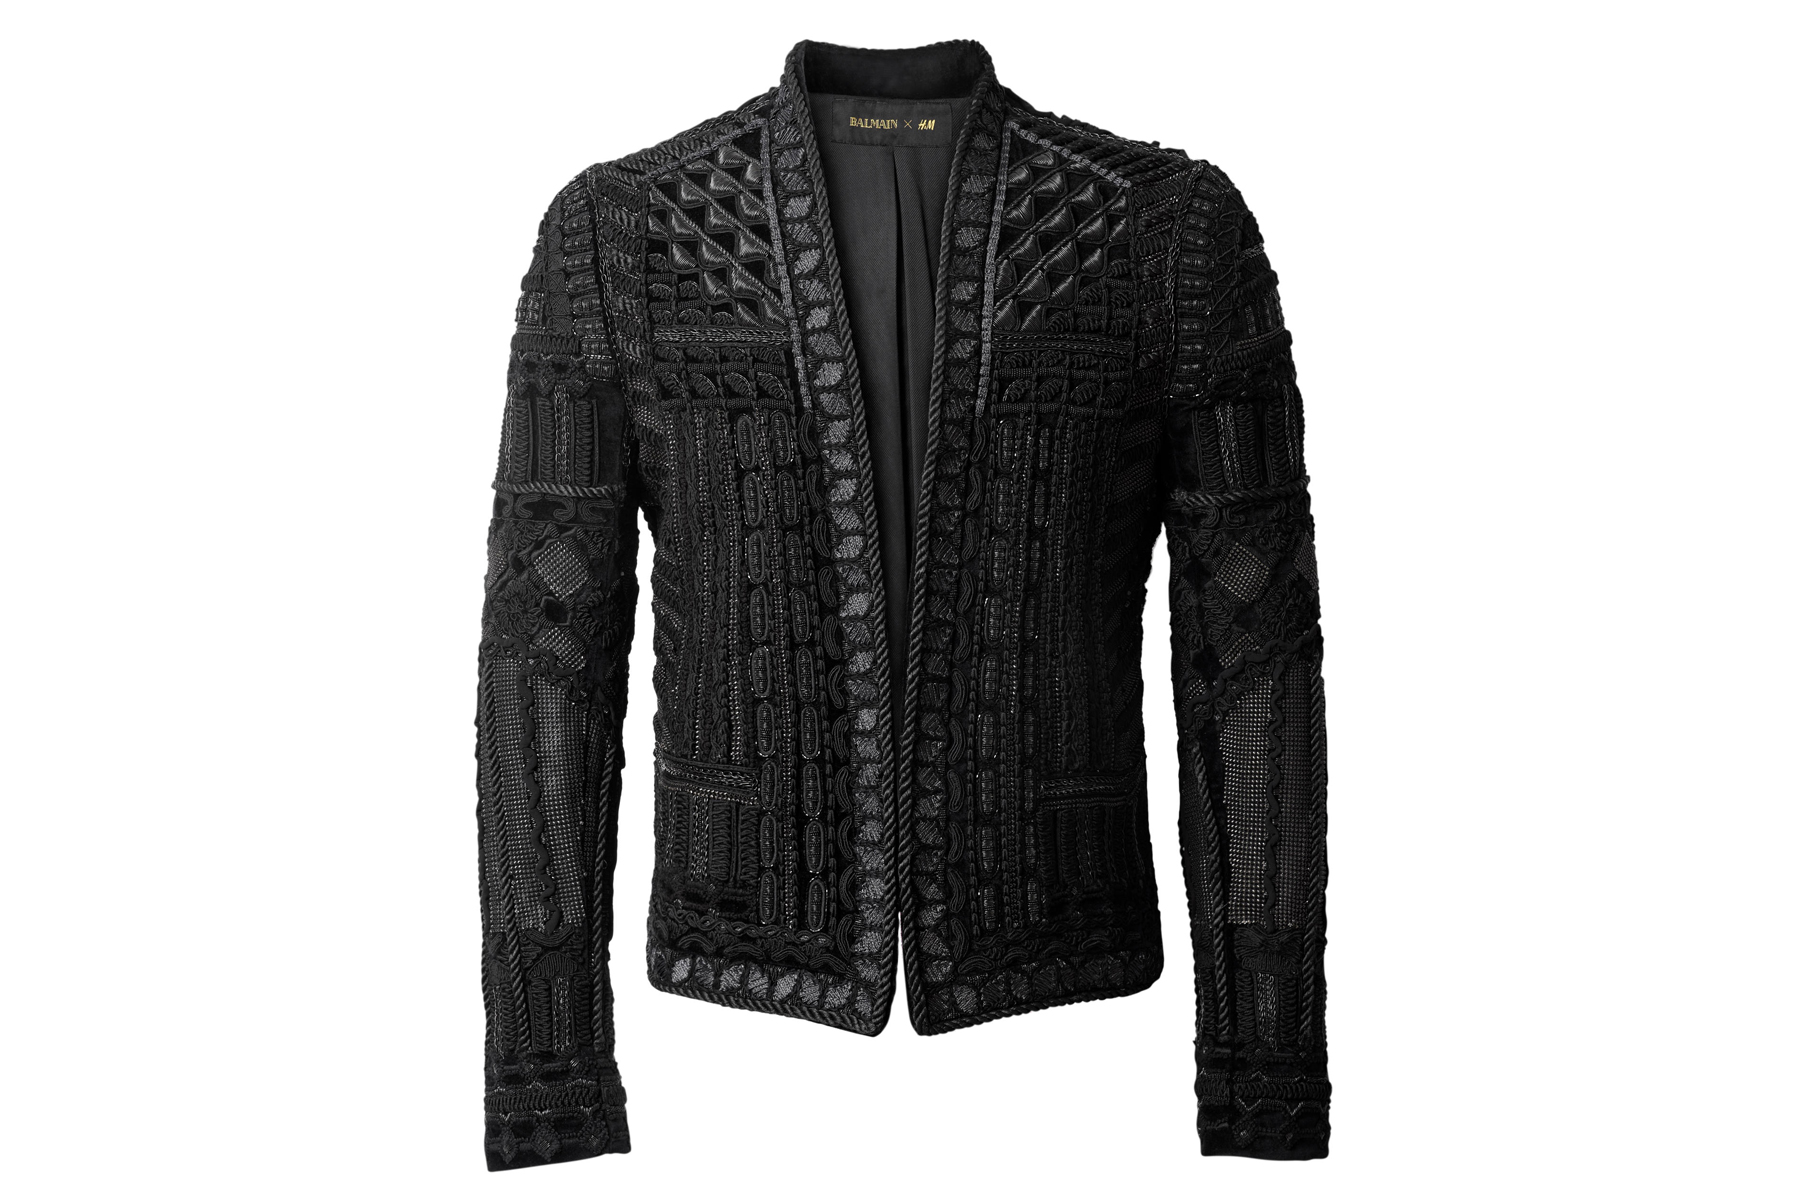 Founded by Pierre Balmain in Paris in , the French fashion house has been under the creative direction of Olivier Rousteing since Characterised by sharp silhouettes, handworked embroidery and military-inspired embellishment, explore the Balmain ready-to-wear collection including men's clothing and women's jackets and dresses.